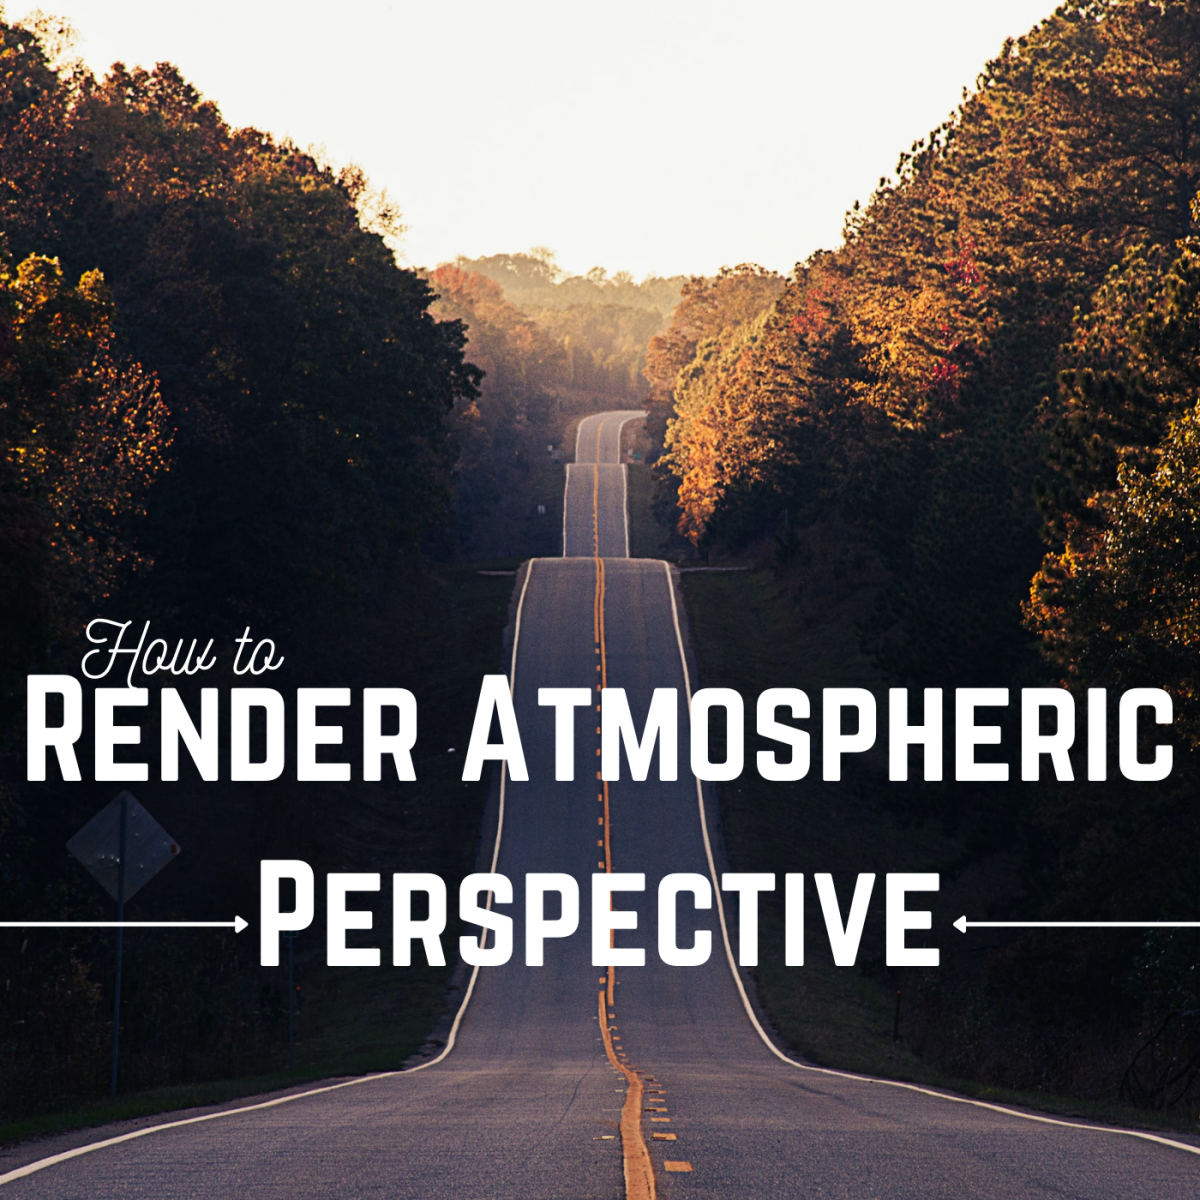 How to Render Atmospheric Perspective in Painting